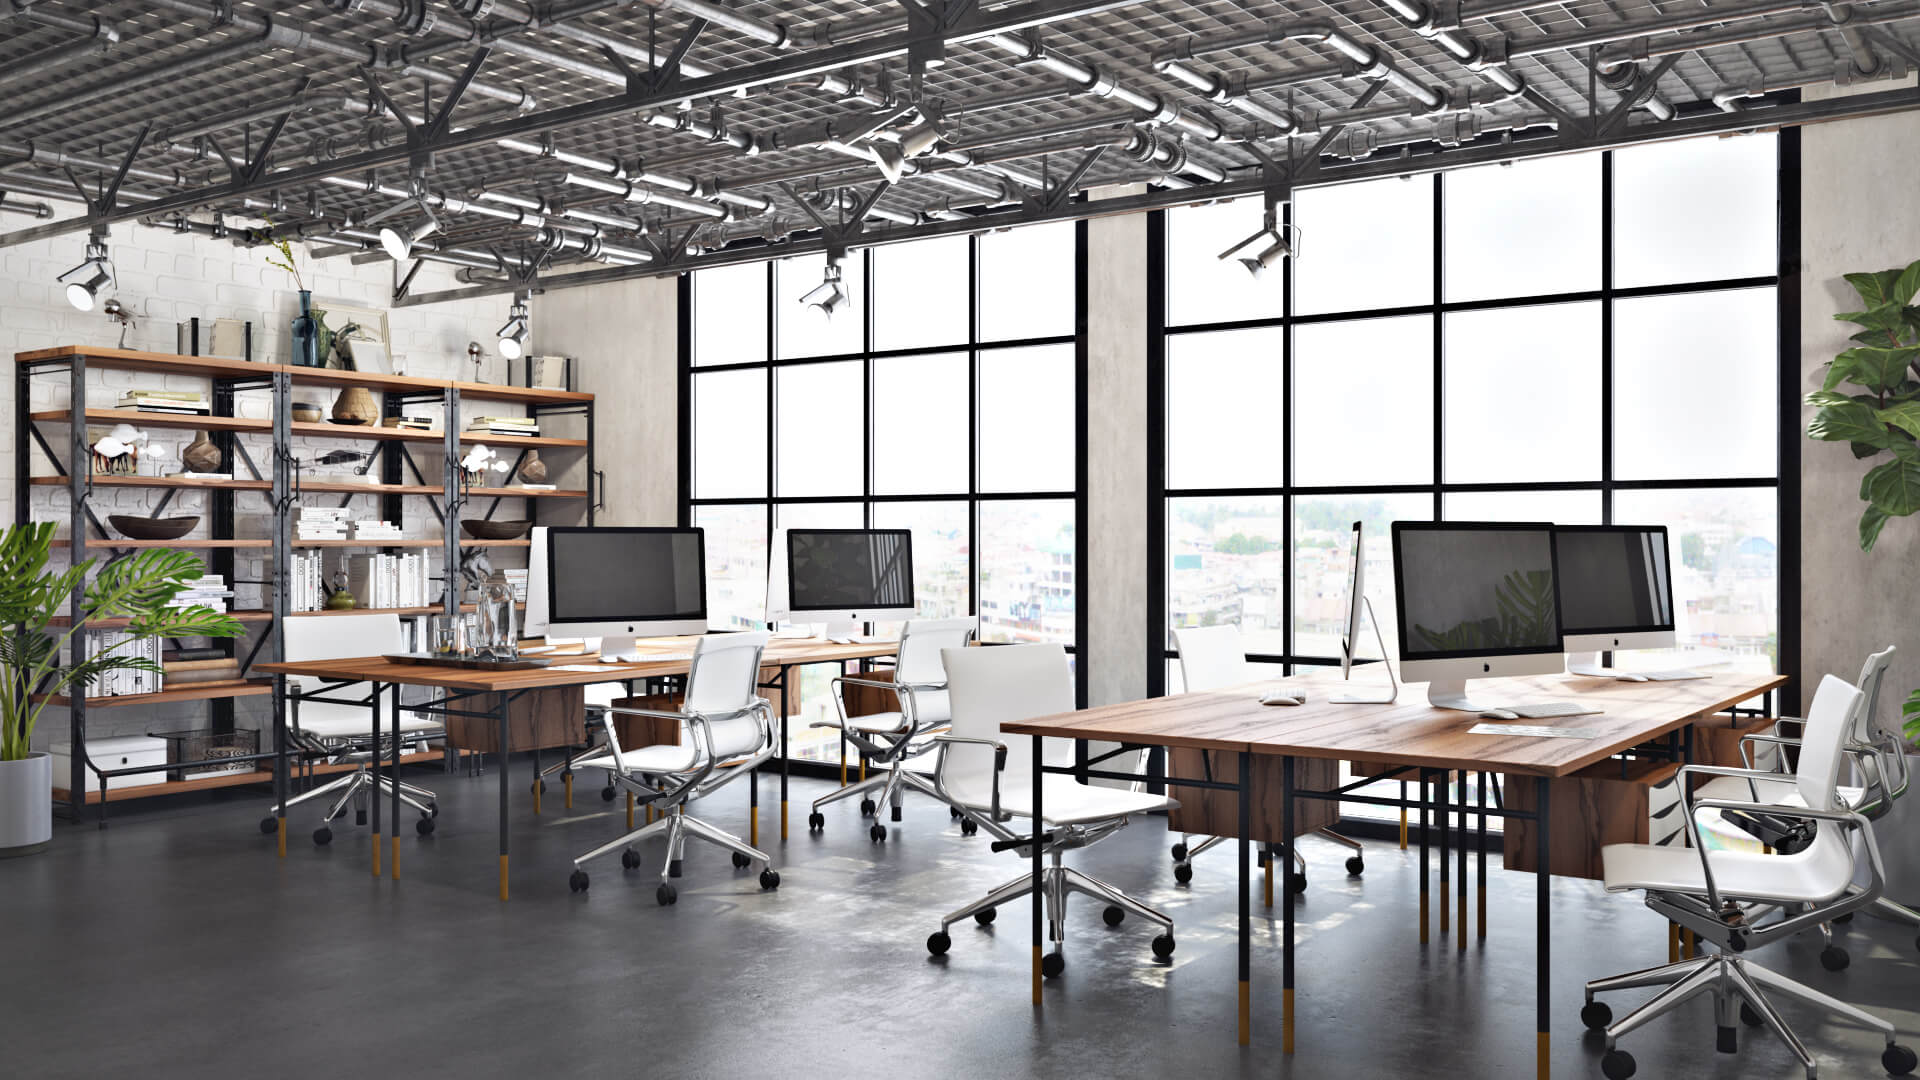 High-Quality Office Design 3D Rendering for a CGI Studio